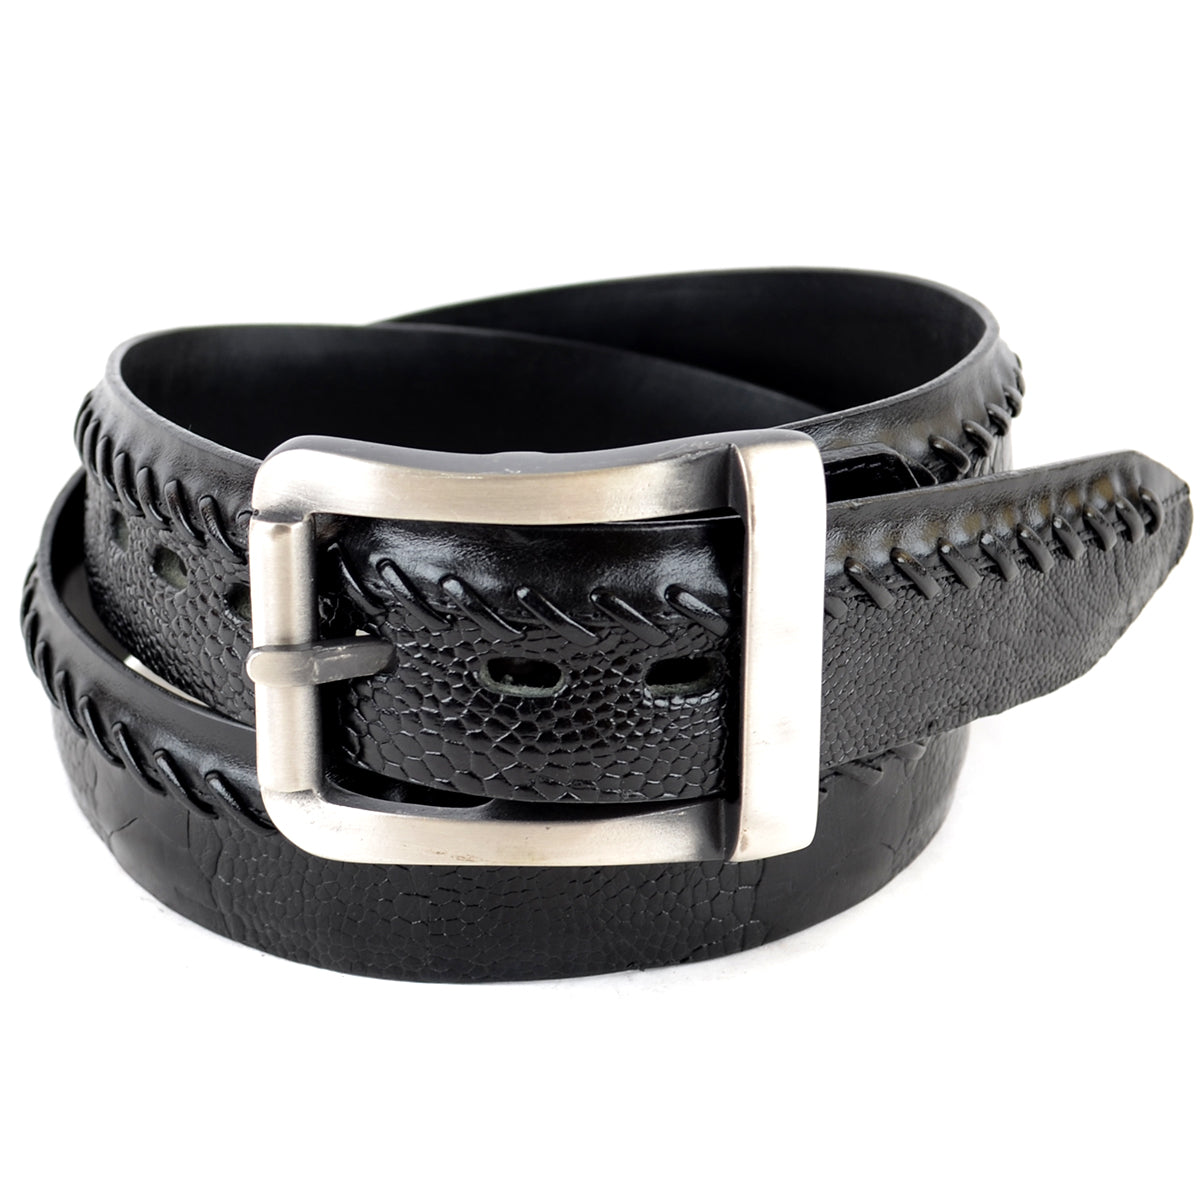 Genuine Ostrich Leg Skin Casual Belt C2305